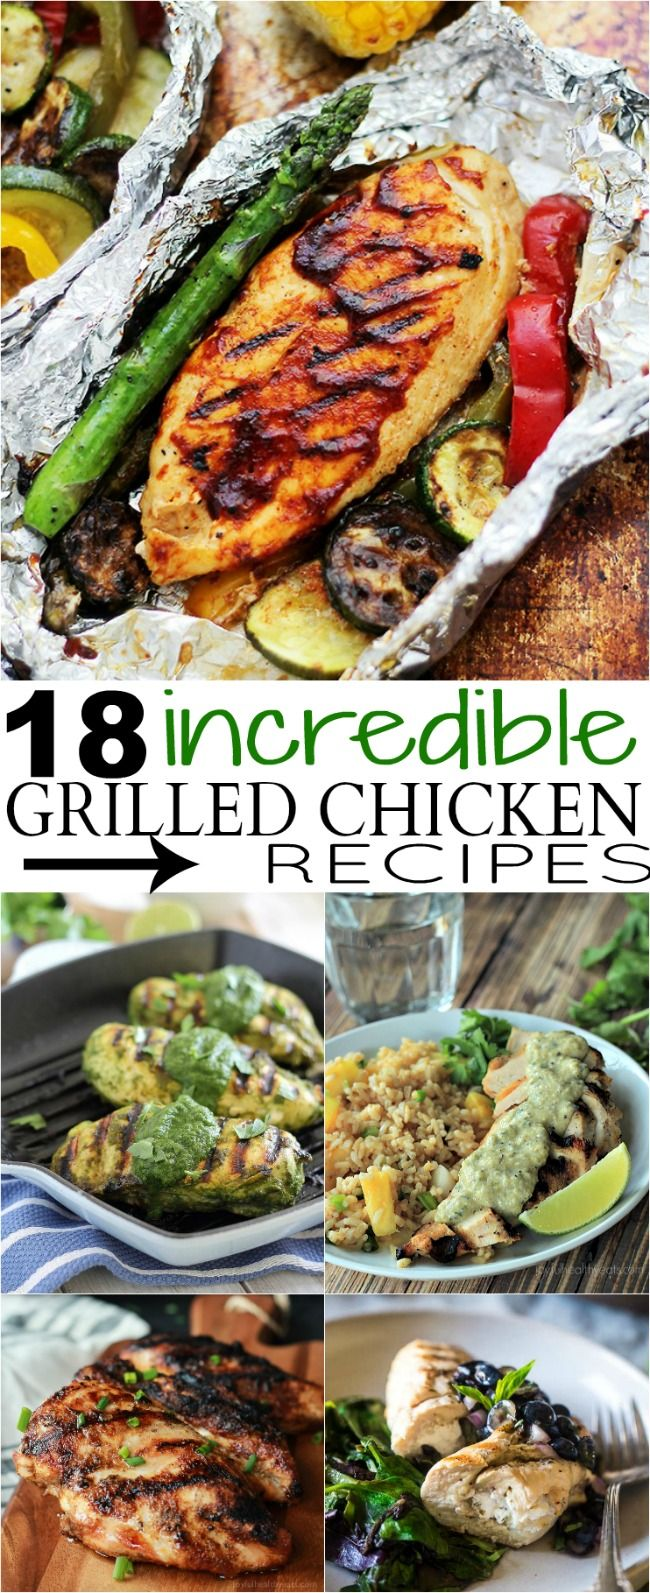 18 Wow-Worthy Grilled Chicken Recipes